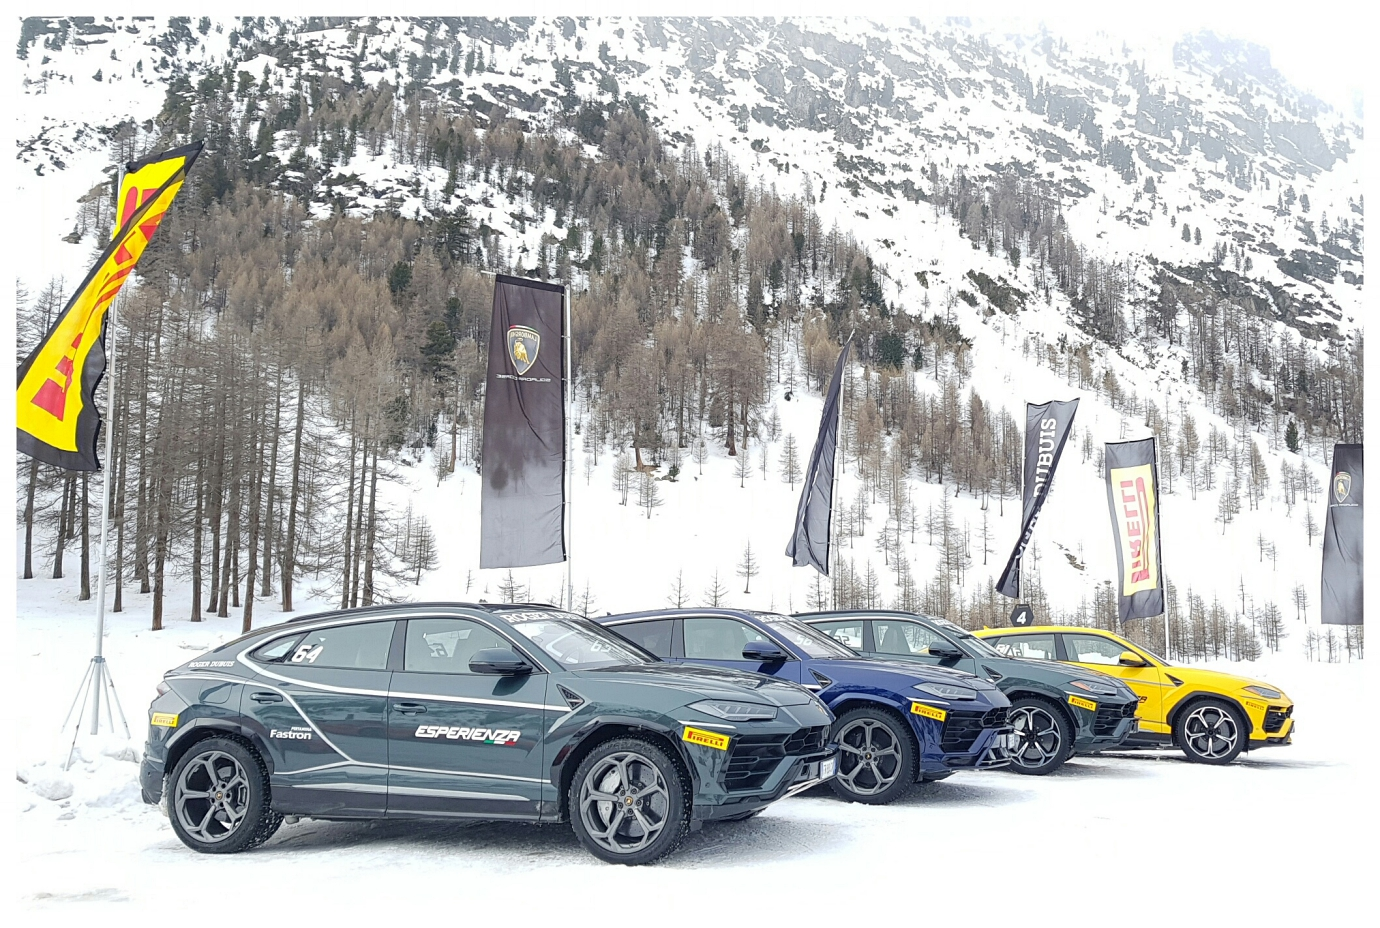 yes, in addition to the Huracan Evos, we had the Urus to play with